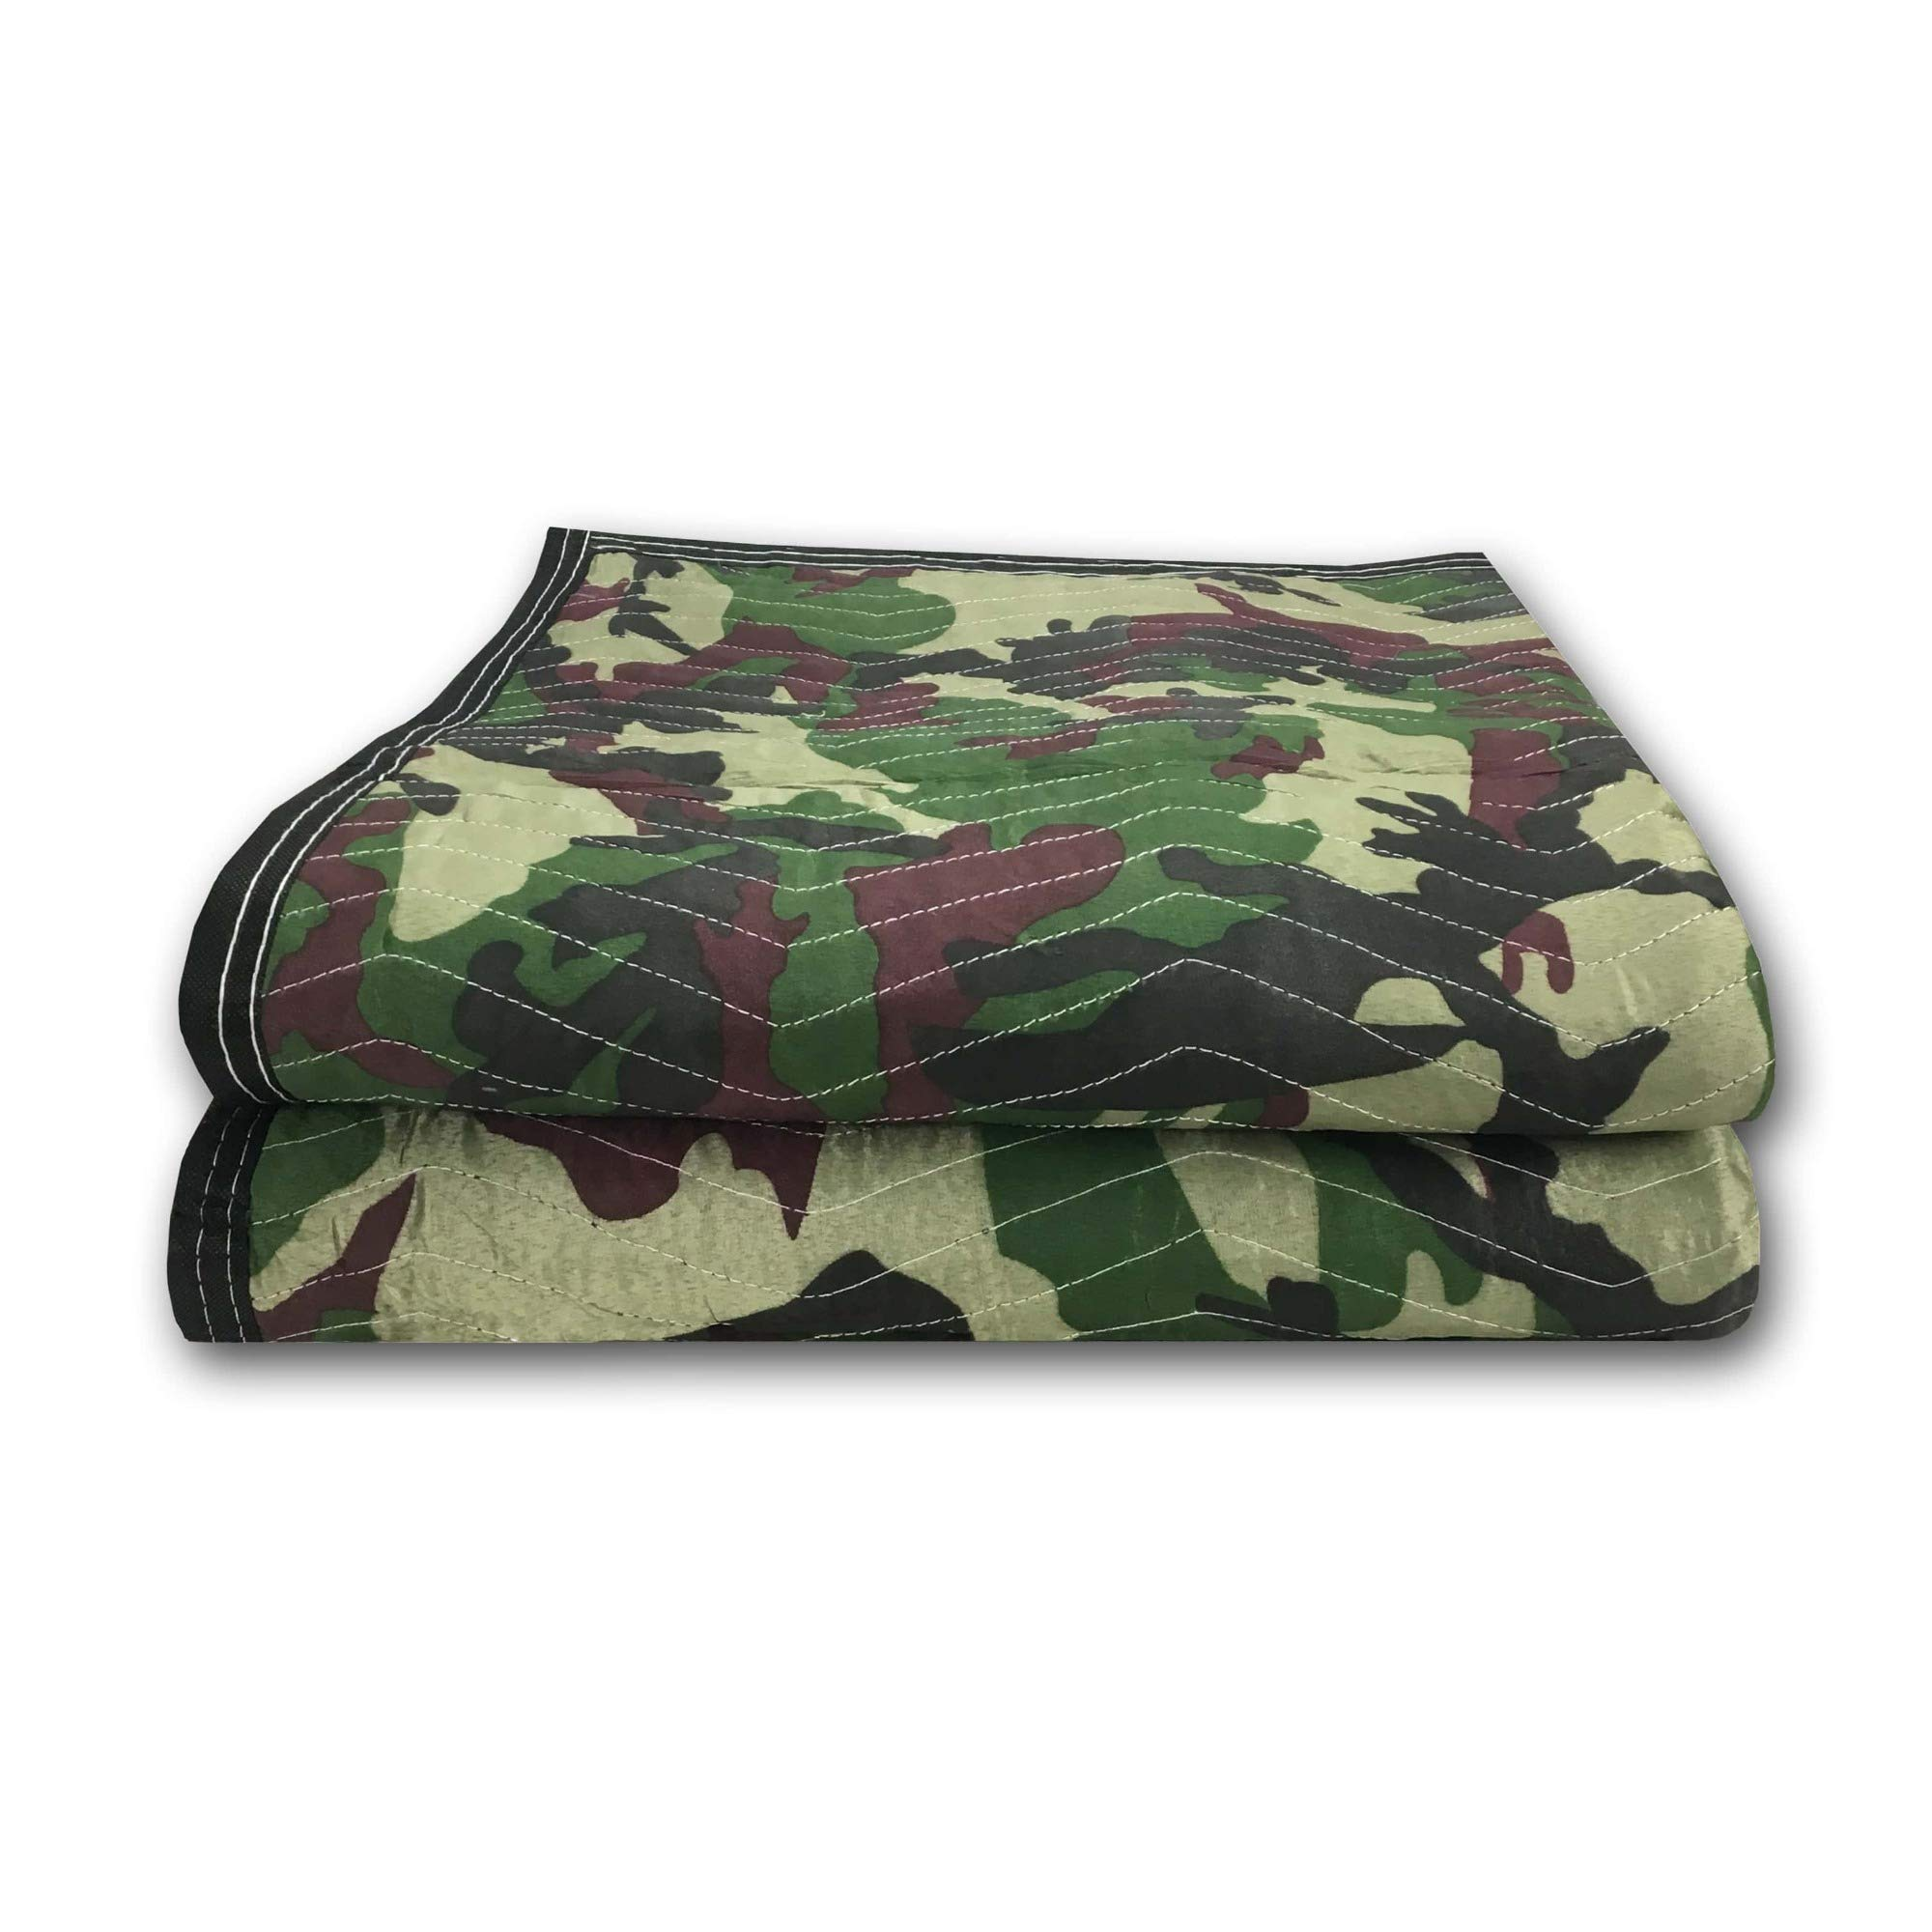 Uboxes A0065CA02 Camo Moving Blankets 65lbs/doz, ((2 Pack)